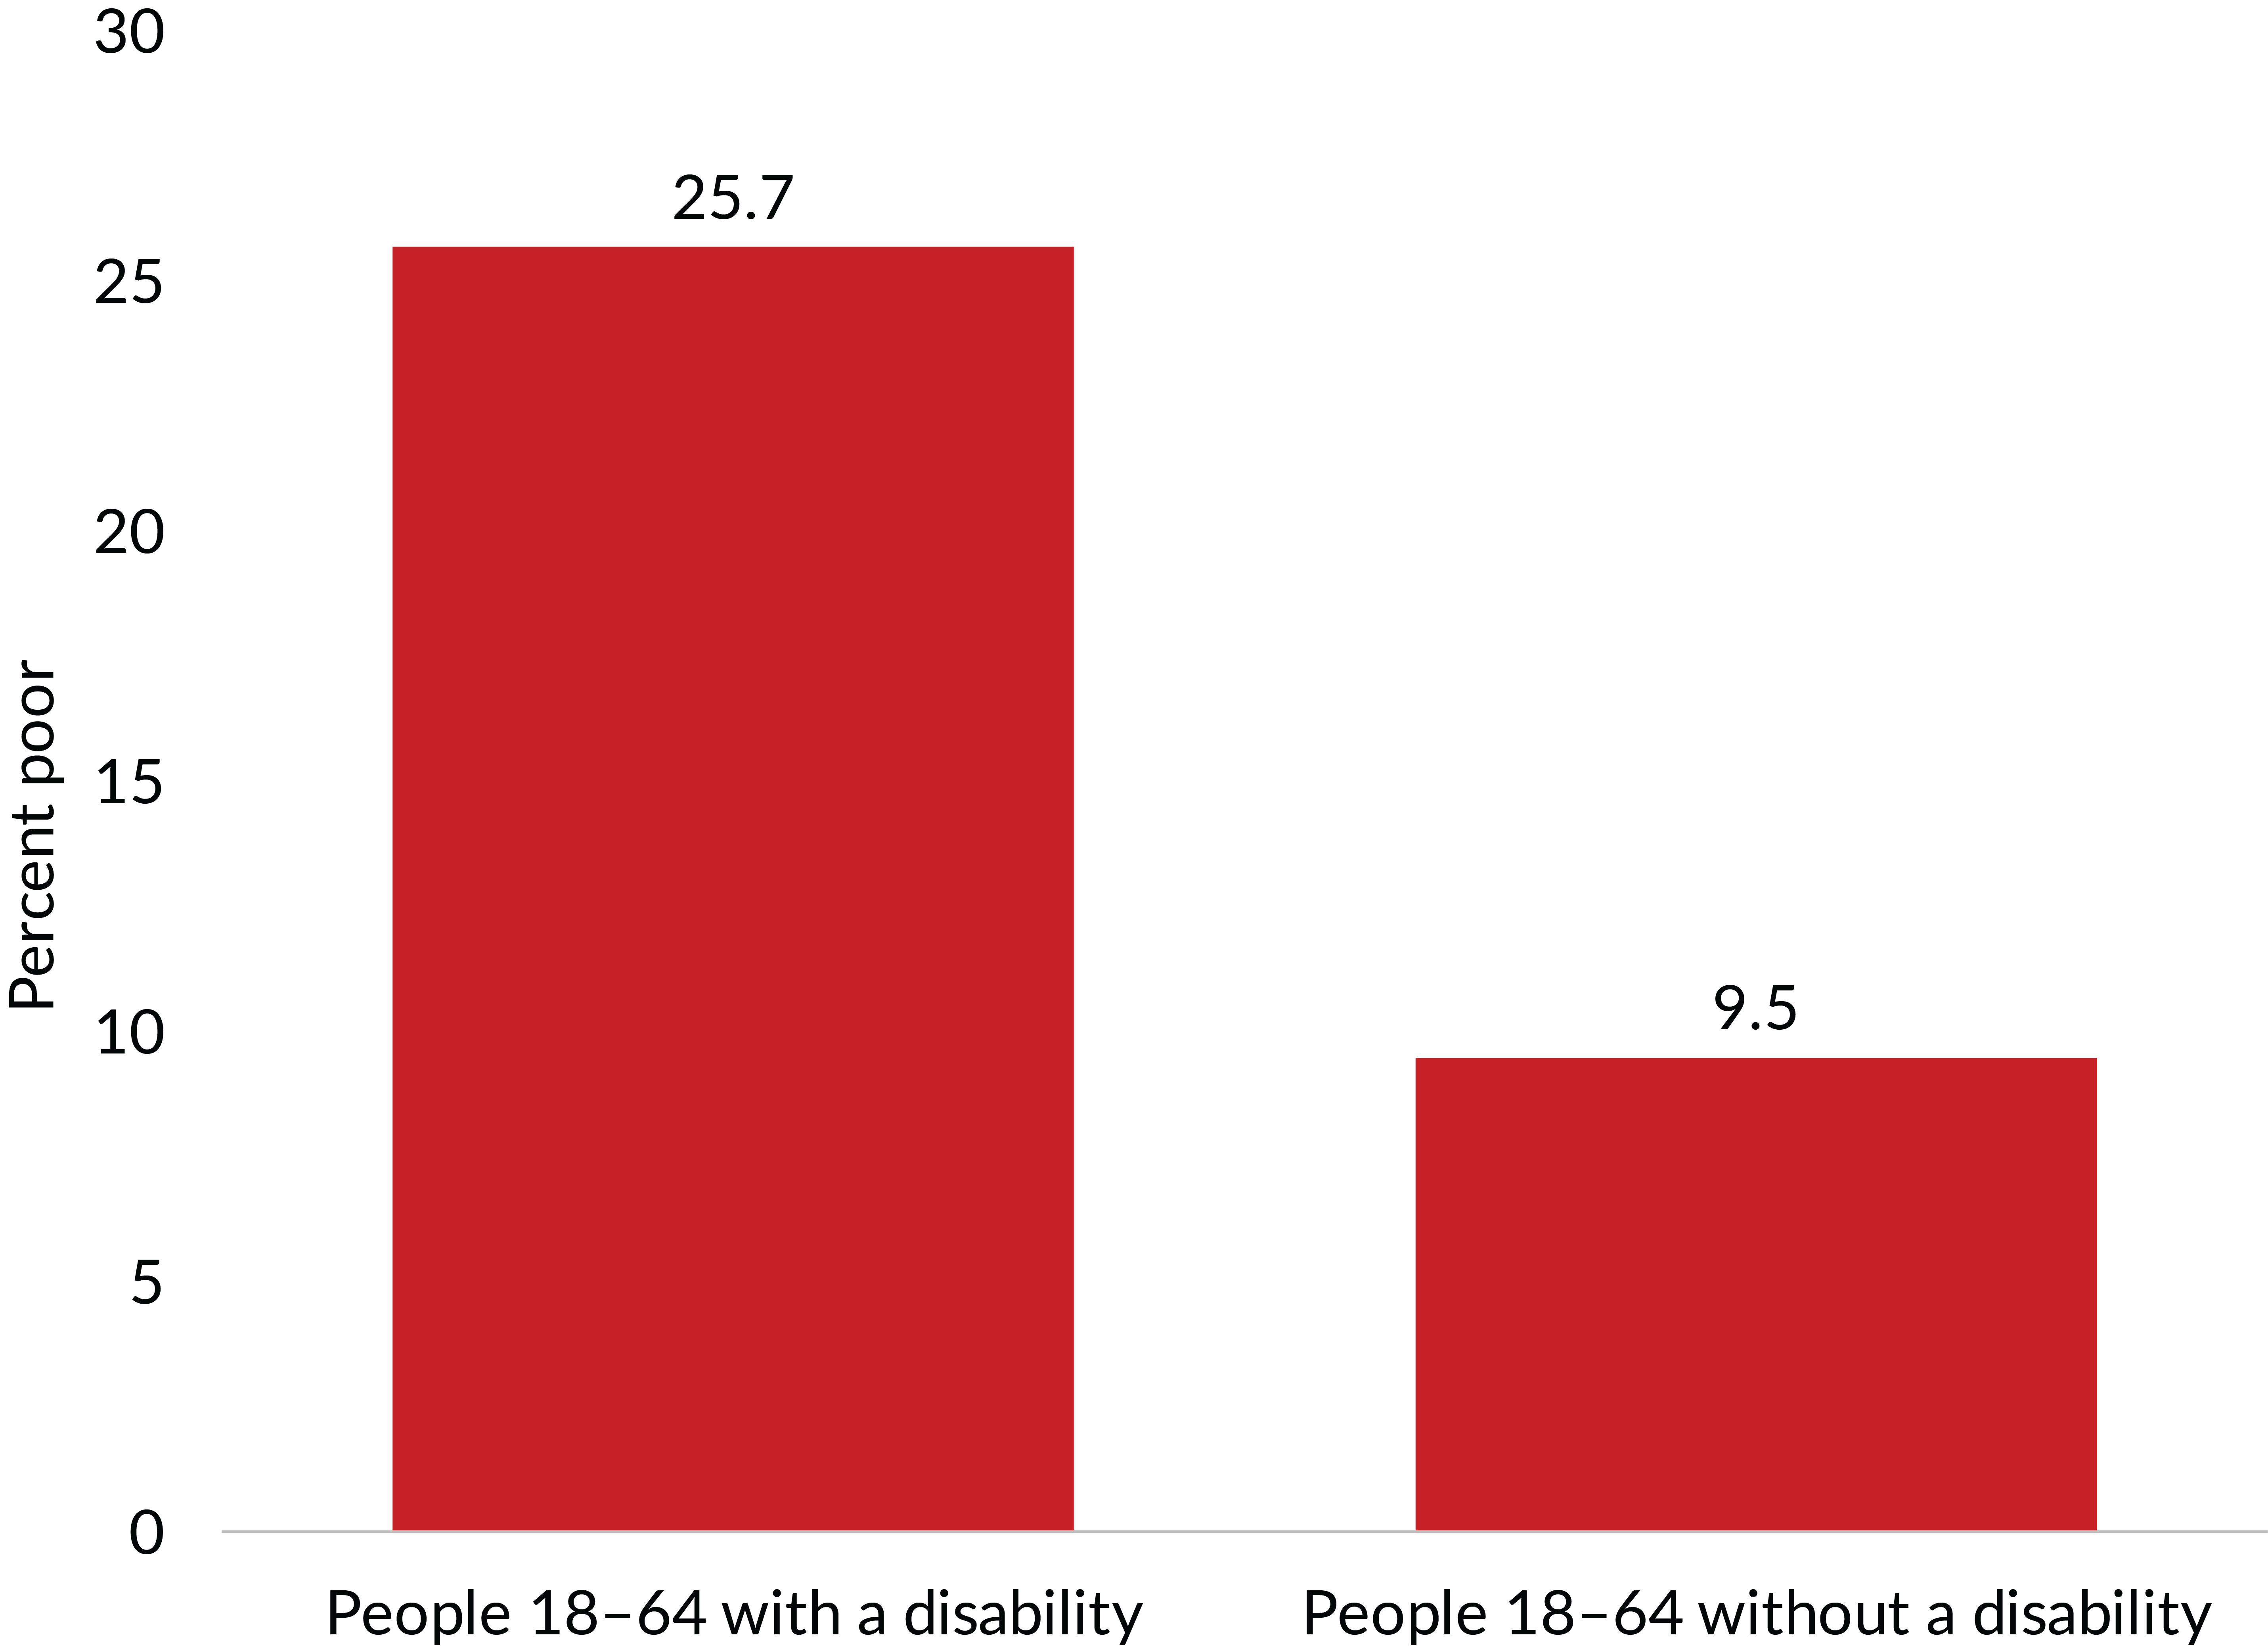 Figure 8. The poverty rate in 2018 of people between the ages of 18 and 64 with a disability was much higher than that for all people that age without a disability. Source: U.S. Census Bureau, Income and Poverty in the United States: 2018. Table B-1, p. 50 & p. 17.